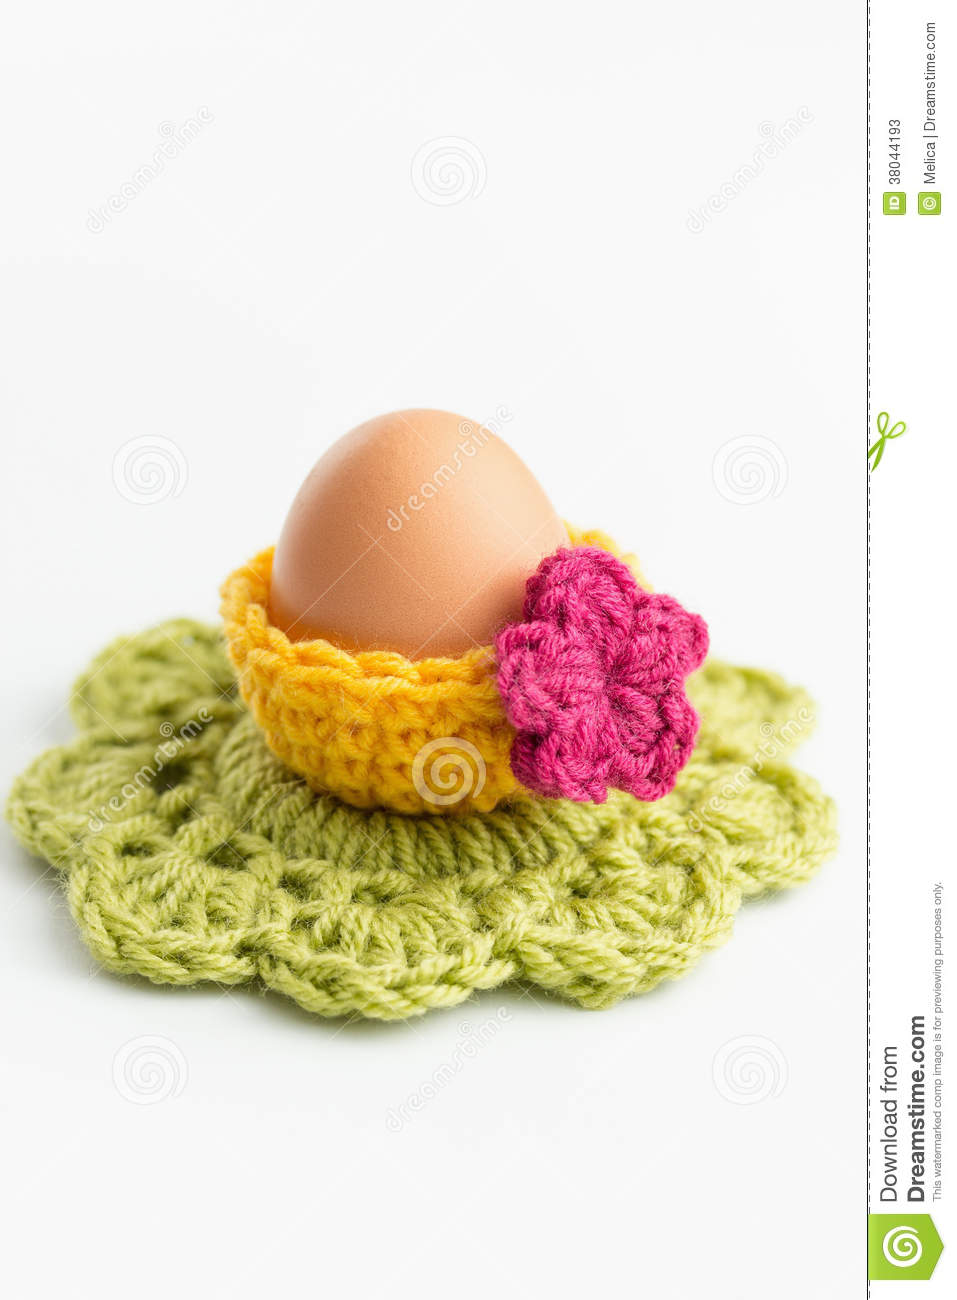 Crochet Easter Decorations Stock Photos Image 38044193